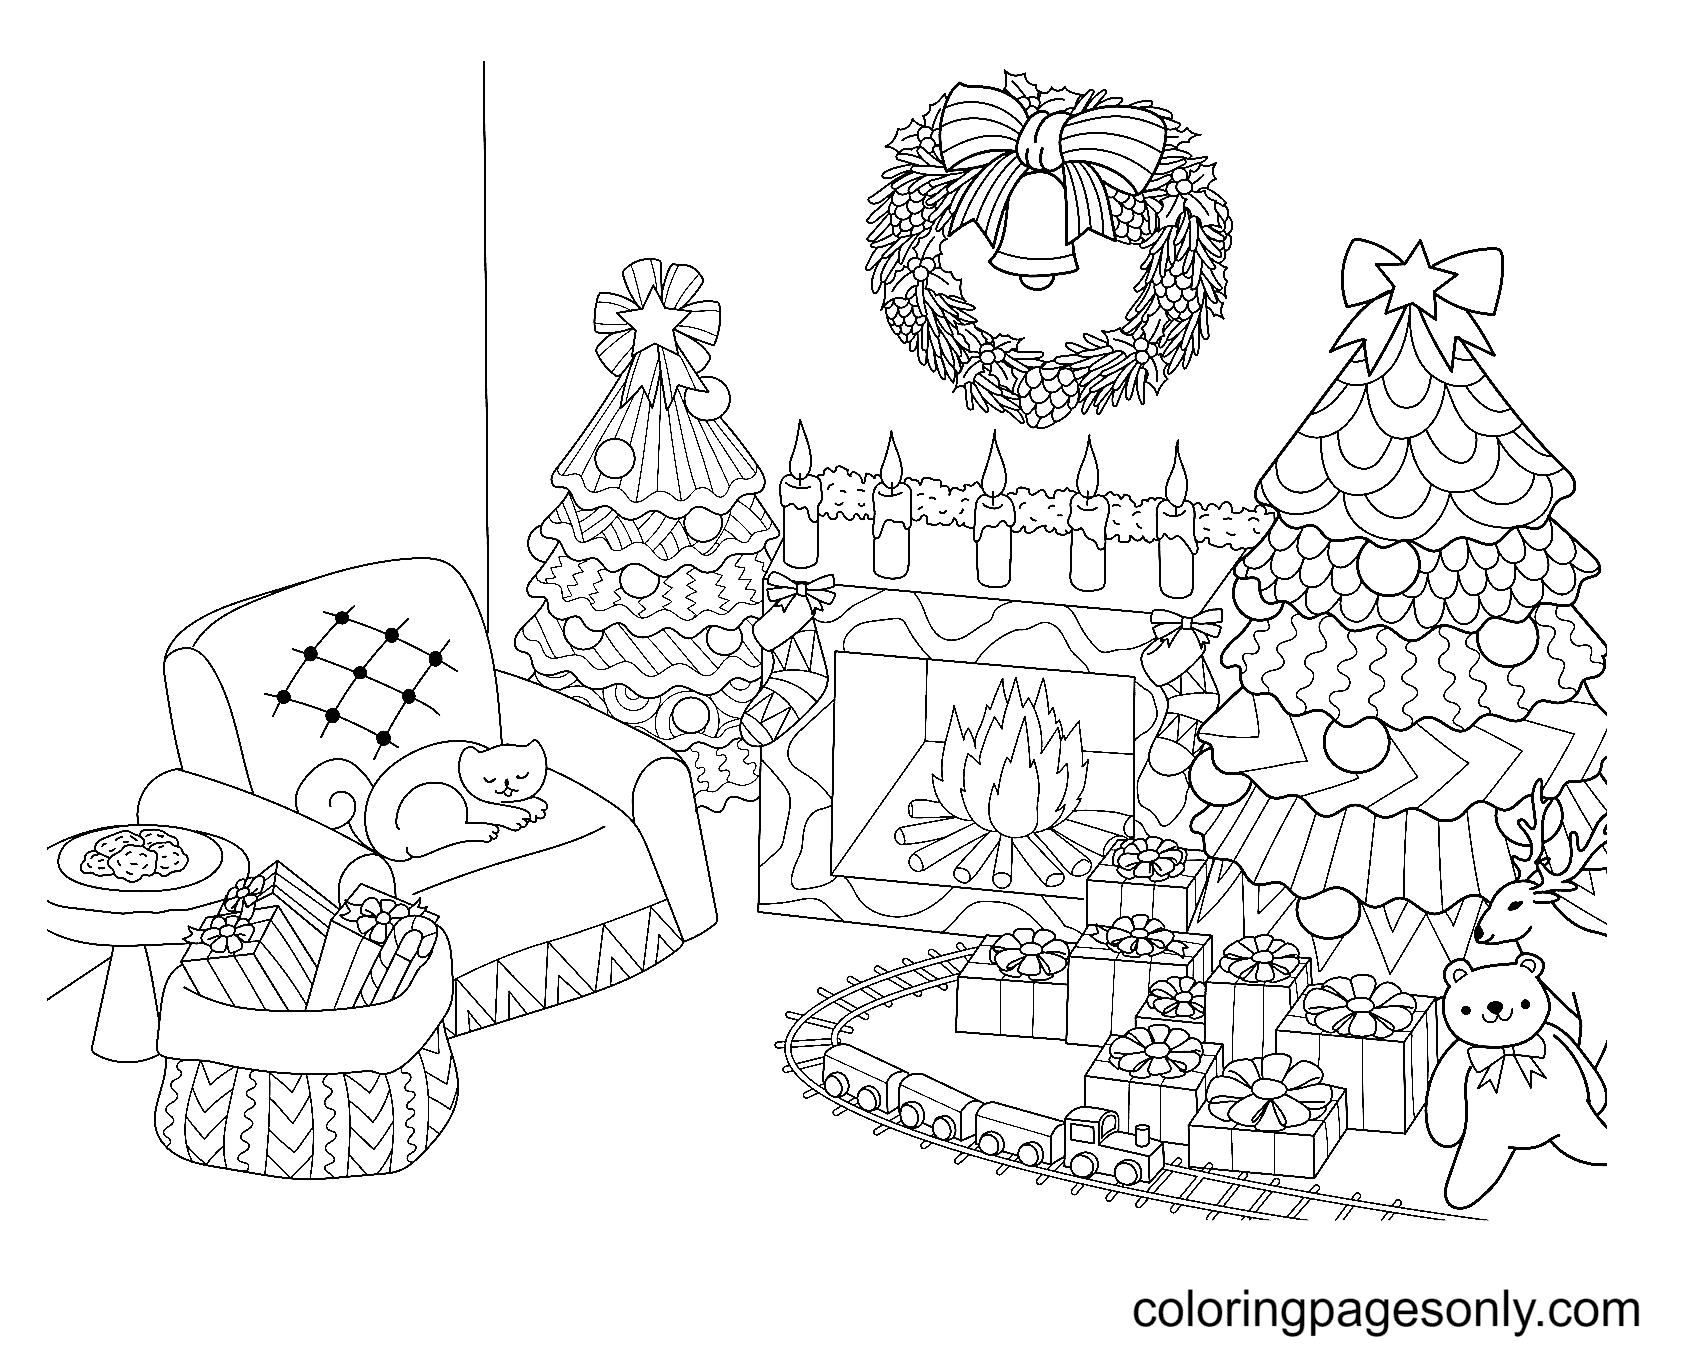 Fireplace and Two Christmas Trees Coloring Page